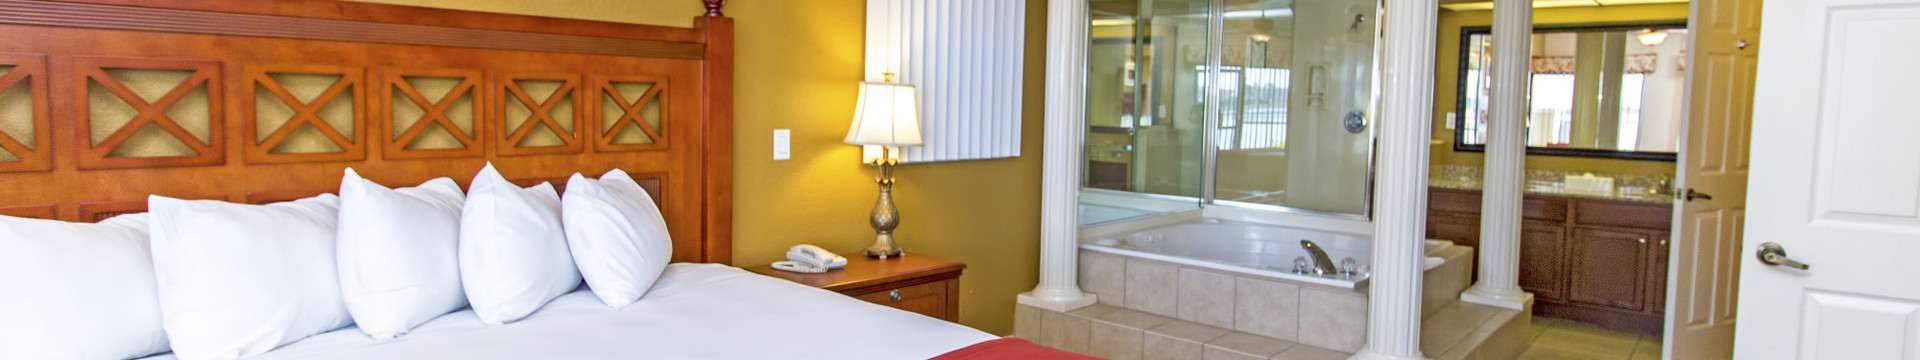 Room Featured in our virtual tour of our Orlando Resorts | Virtual Tour of Westgate Lakes Resort & Spa